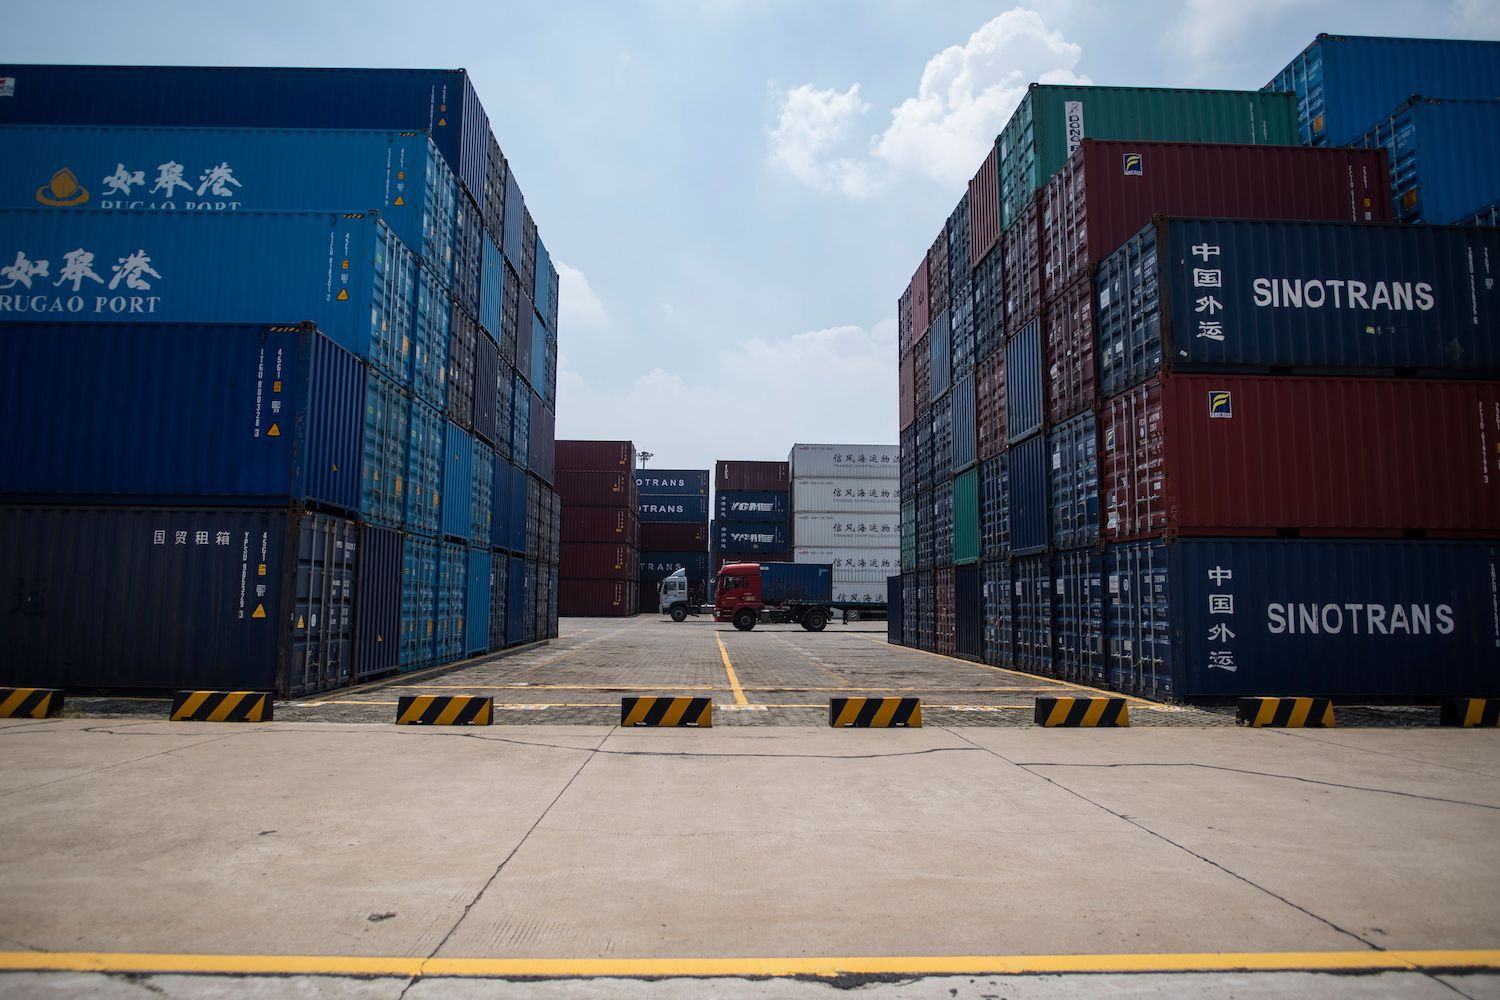 This photo taken on August 7, 2018 shows a truck (C) transporting a container next to stacked containers at a port in Zhangjiagang in China's eastern Jiangsu province. - China's trade surplus with the United States eased in July, when President Donald Trump imposed stiff tariffs on billions of dollars worth of Chinese goods in a showdown between the world's two biggest economies. The figures on August 8 come as the two exchange threats of further measures, which have fuelled fears of a trade war many observers warn could hammer global business. (Photo by Johannes EISELE / AFP) (Photo credit should read JOHANNES EISELE/AFP/Getty Images)